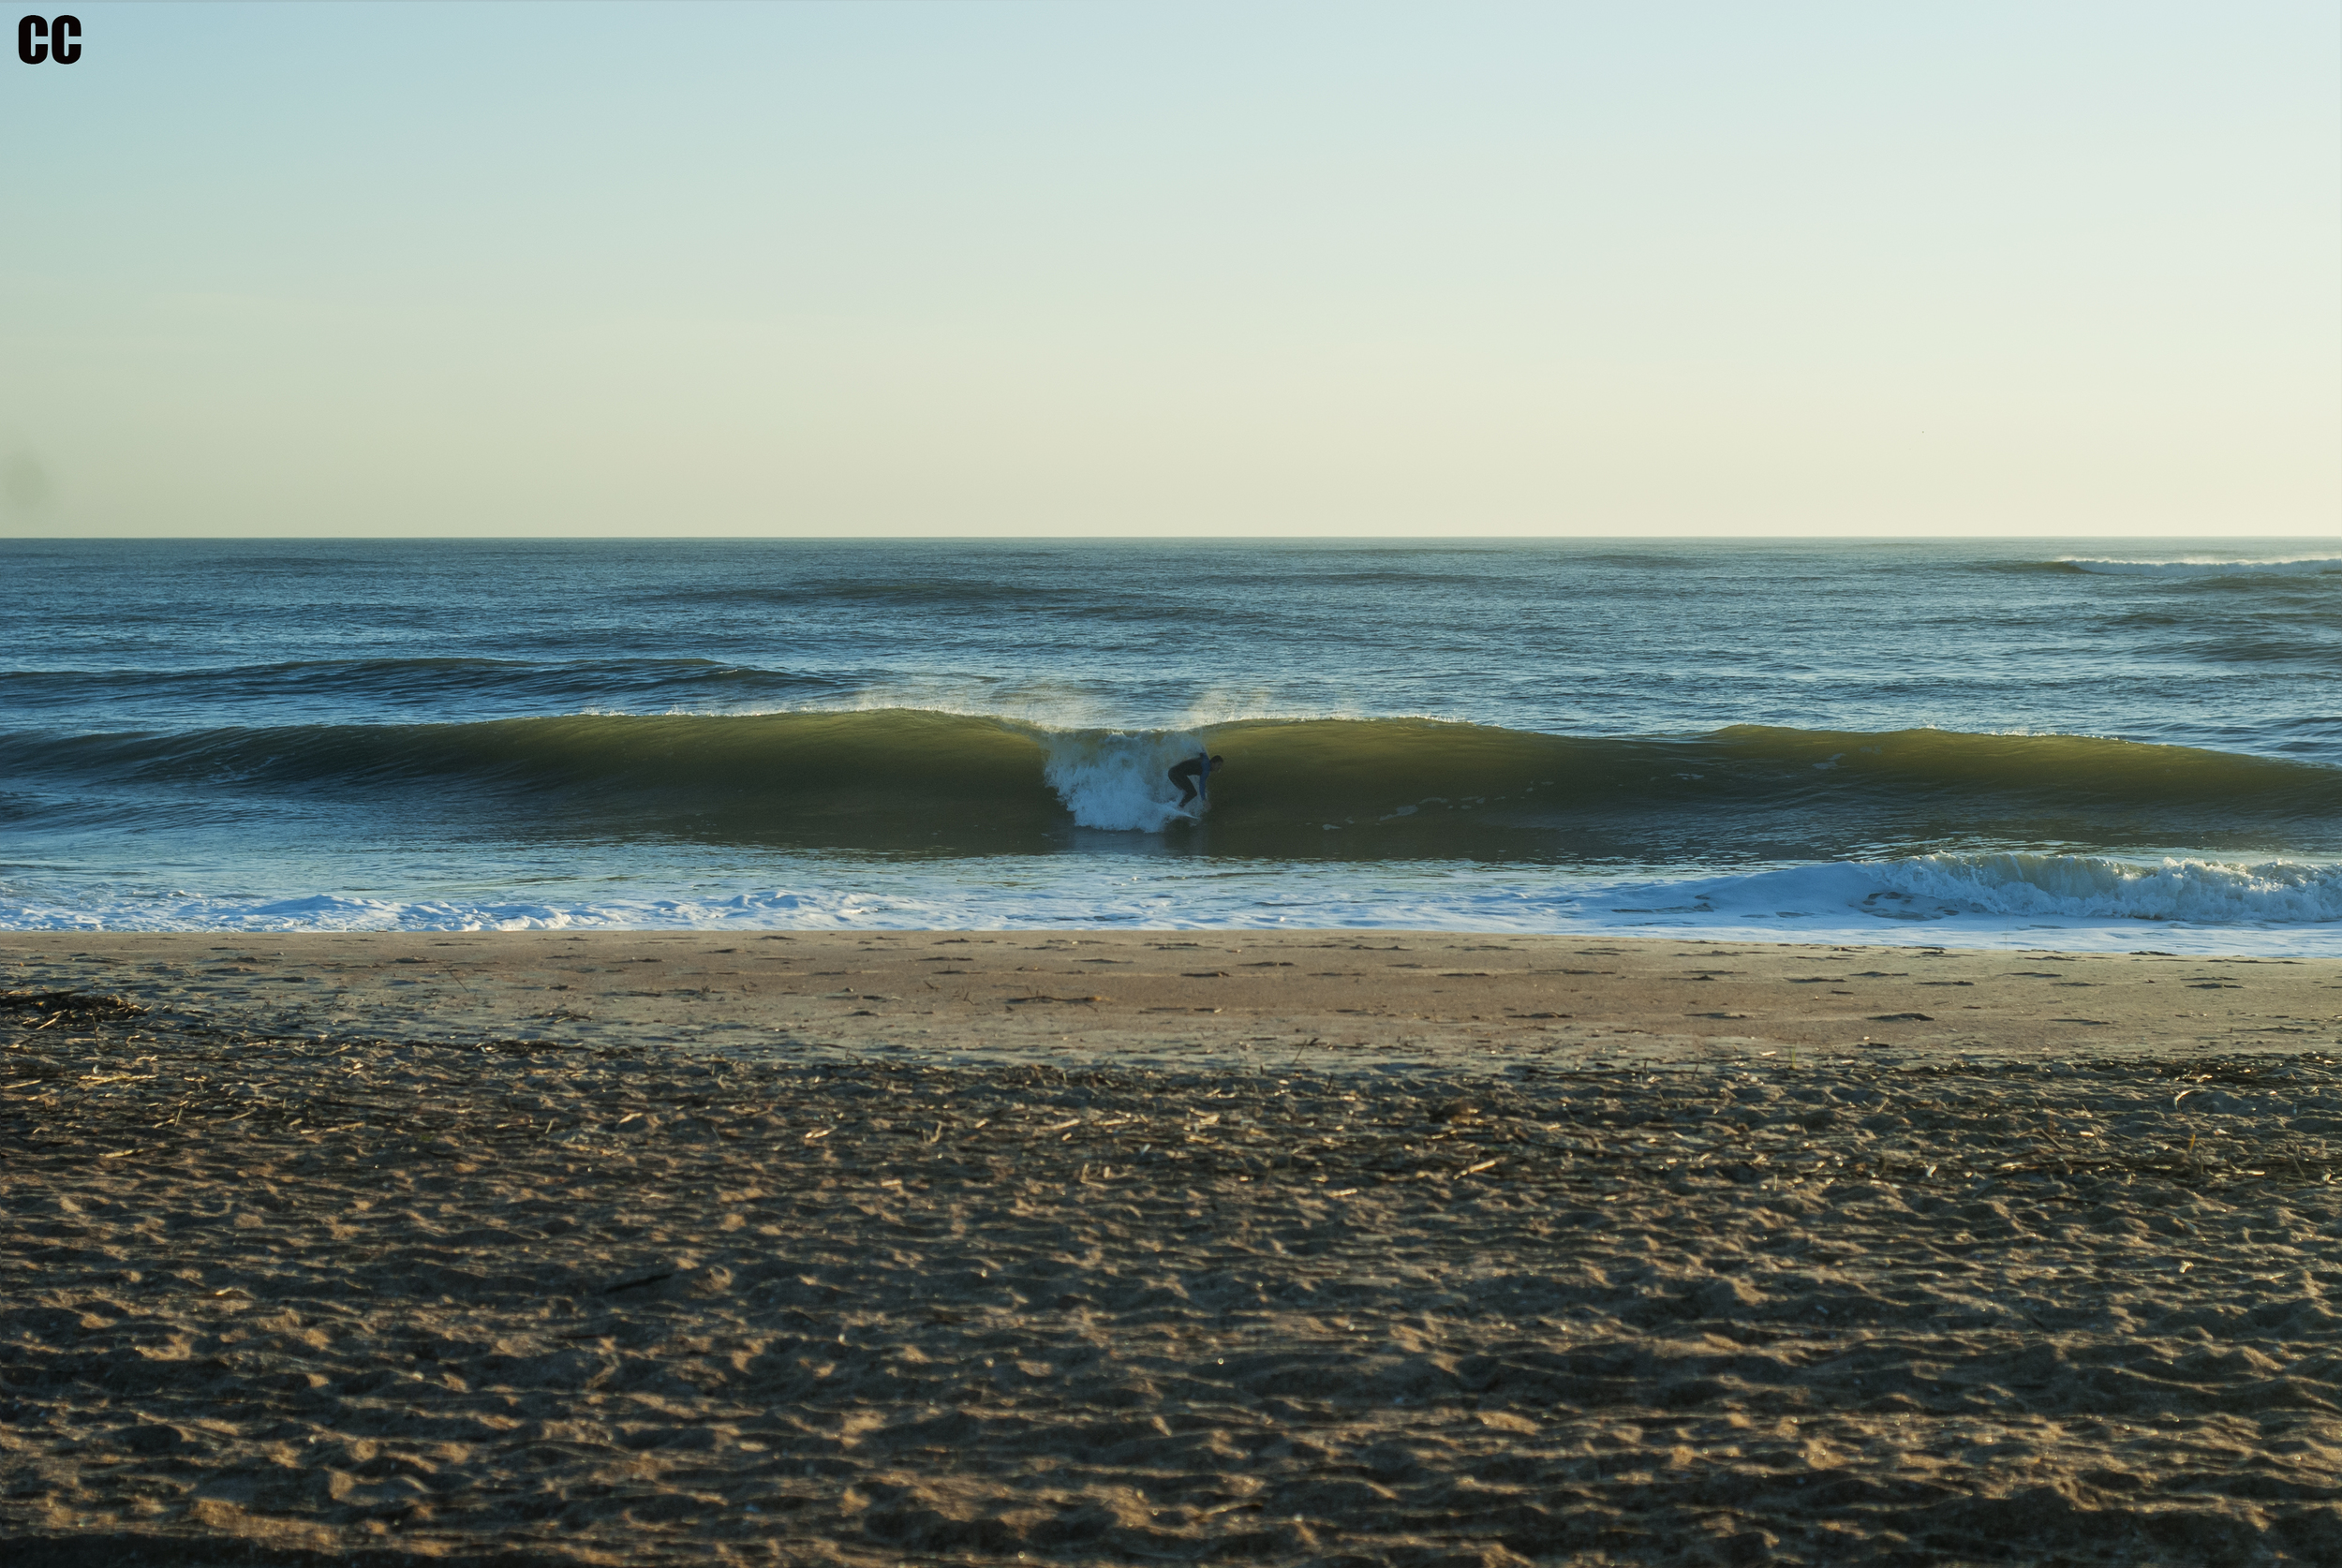 STEPHEN KALTENBACH pulling into his first wave of the morning. I was in the middle of putting my camera in my waterhousing and I look up to this. After this one I knew there was a reason I woke up so early.